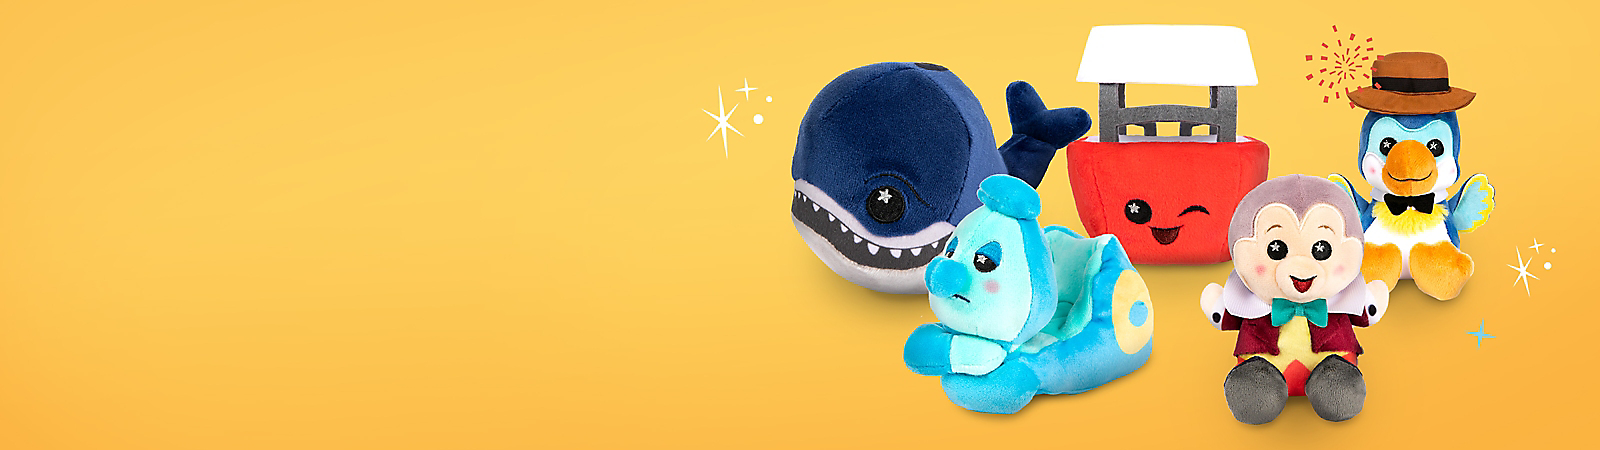 Background image of Mini Plush